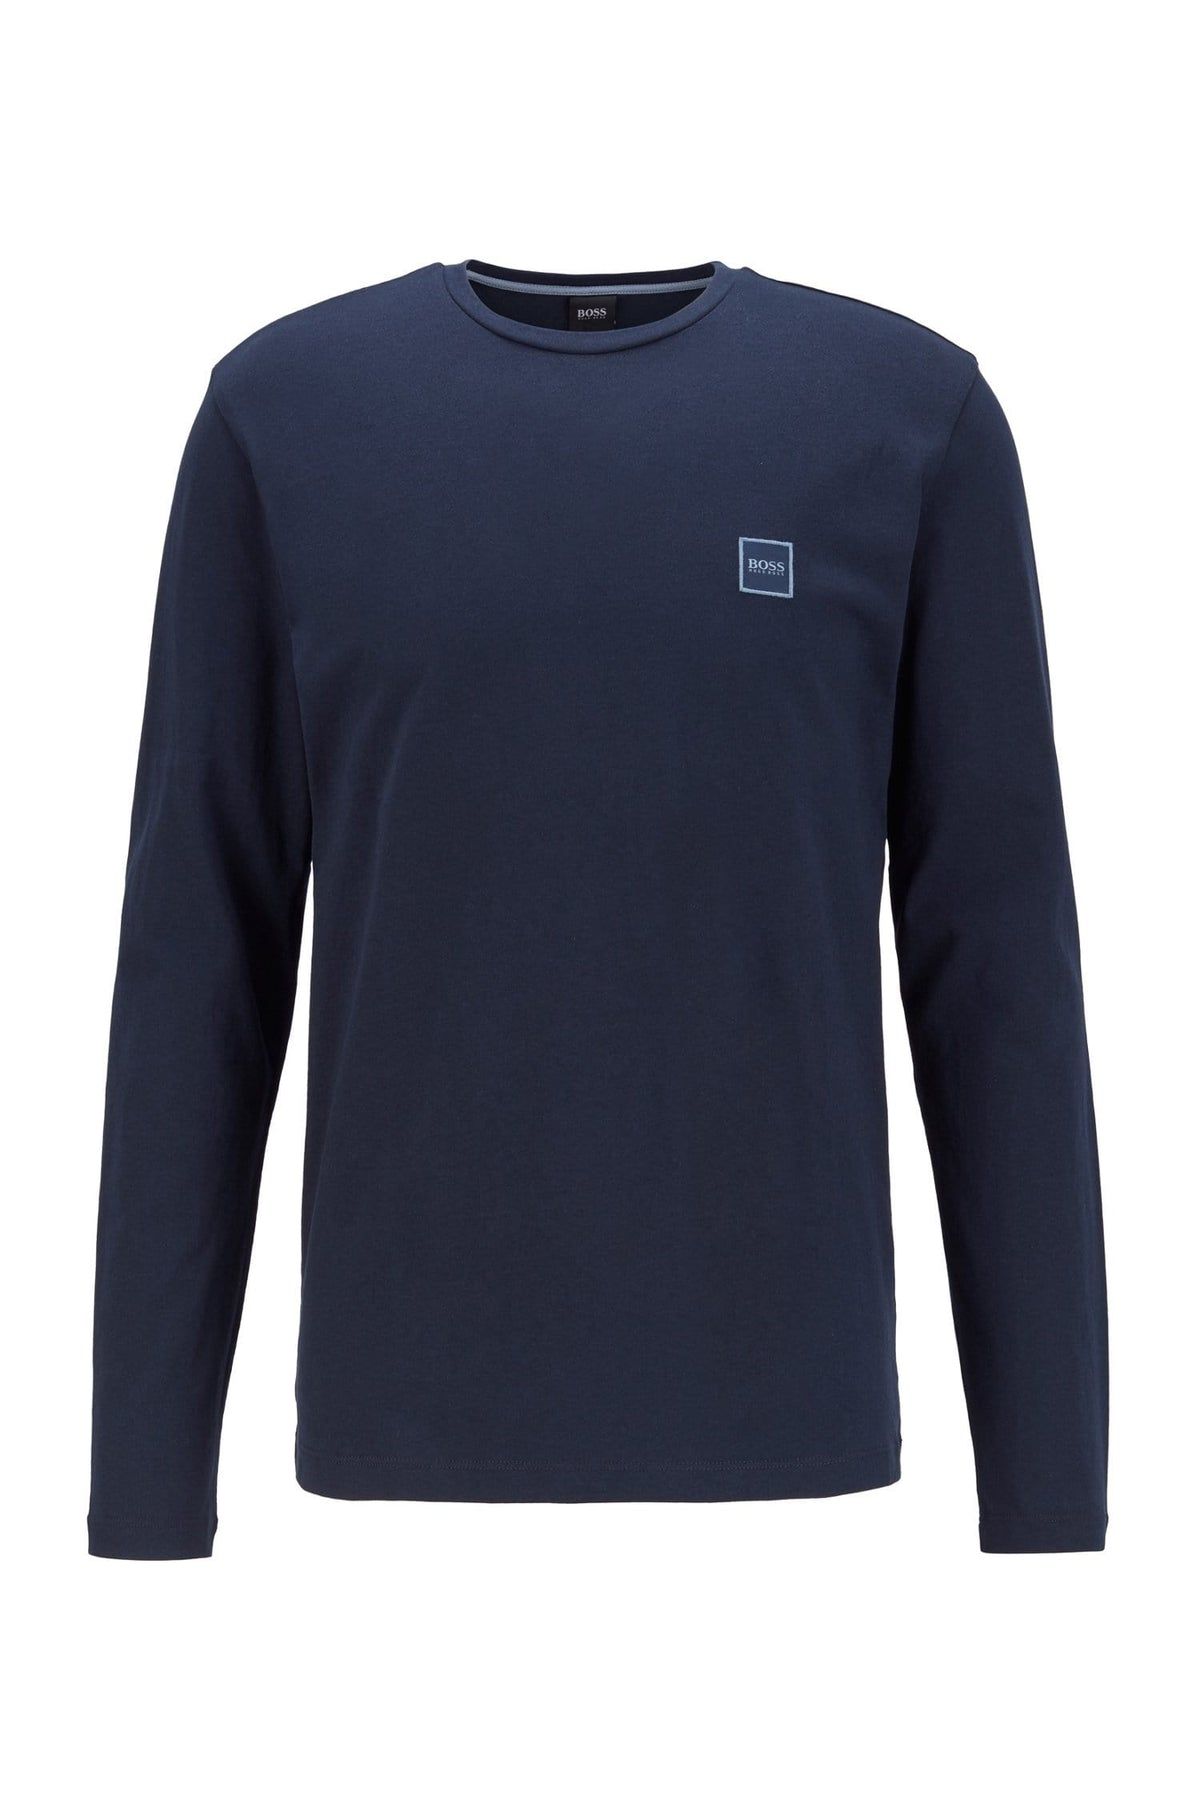 BOSS Long Sleeve Navy T-shirt_Tacks